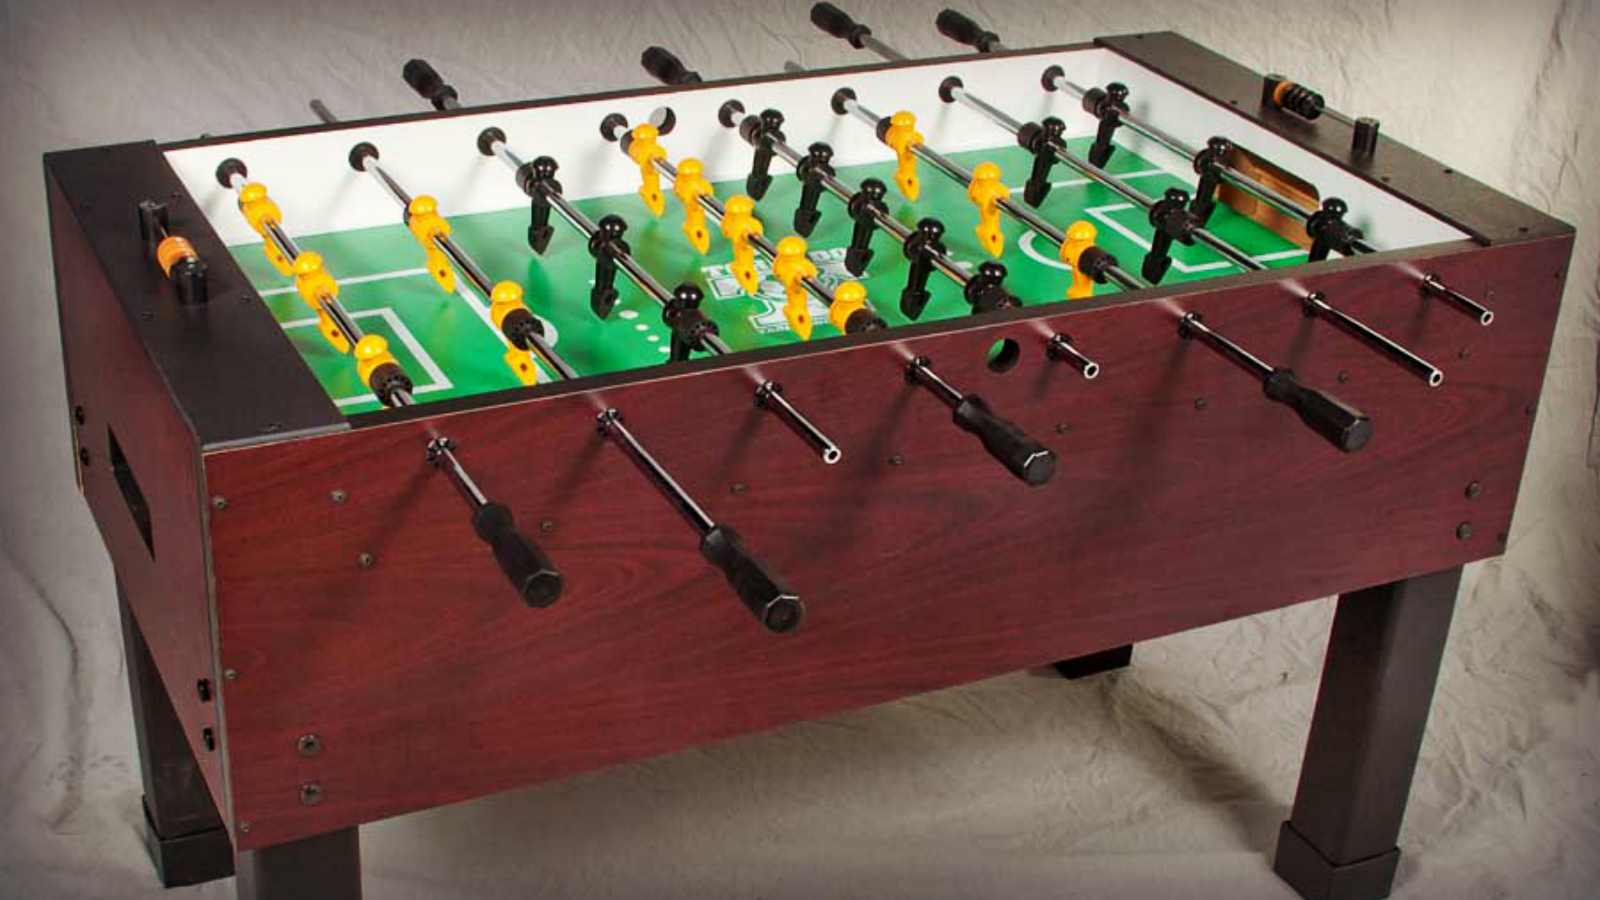 Best Soccer Gifts: Tornado Sport Foosball Table